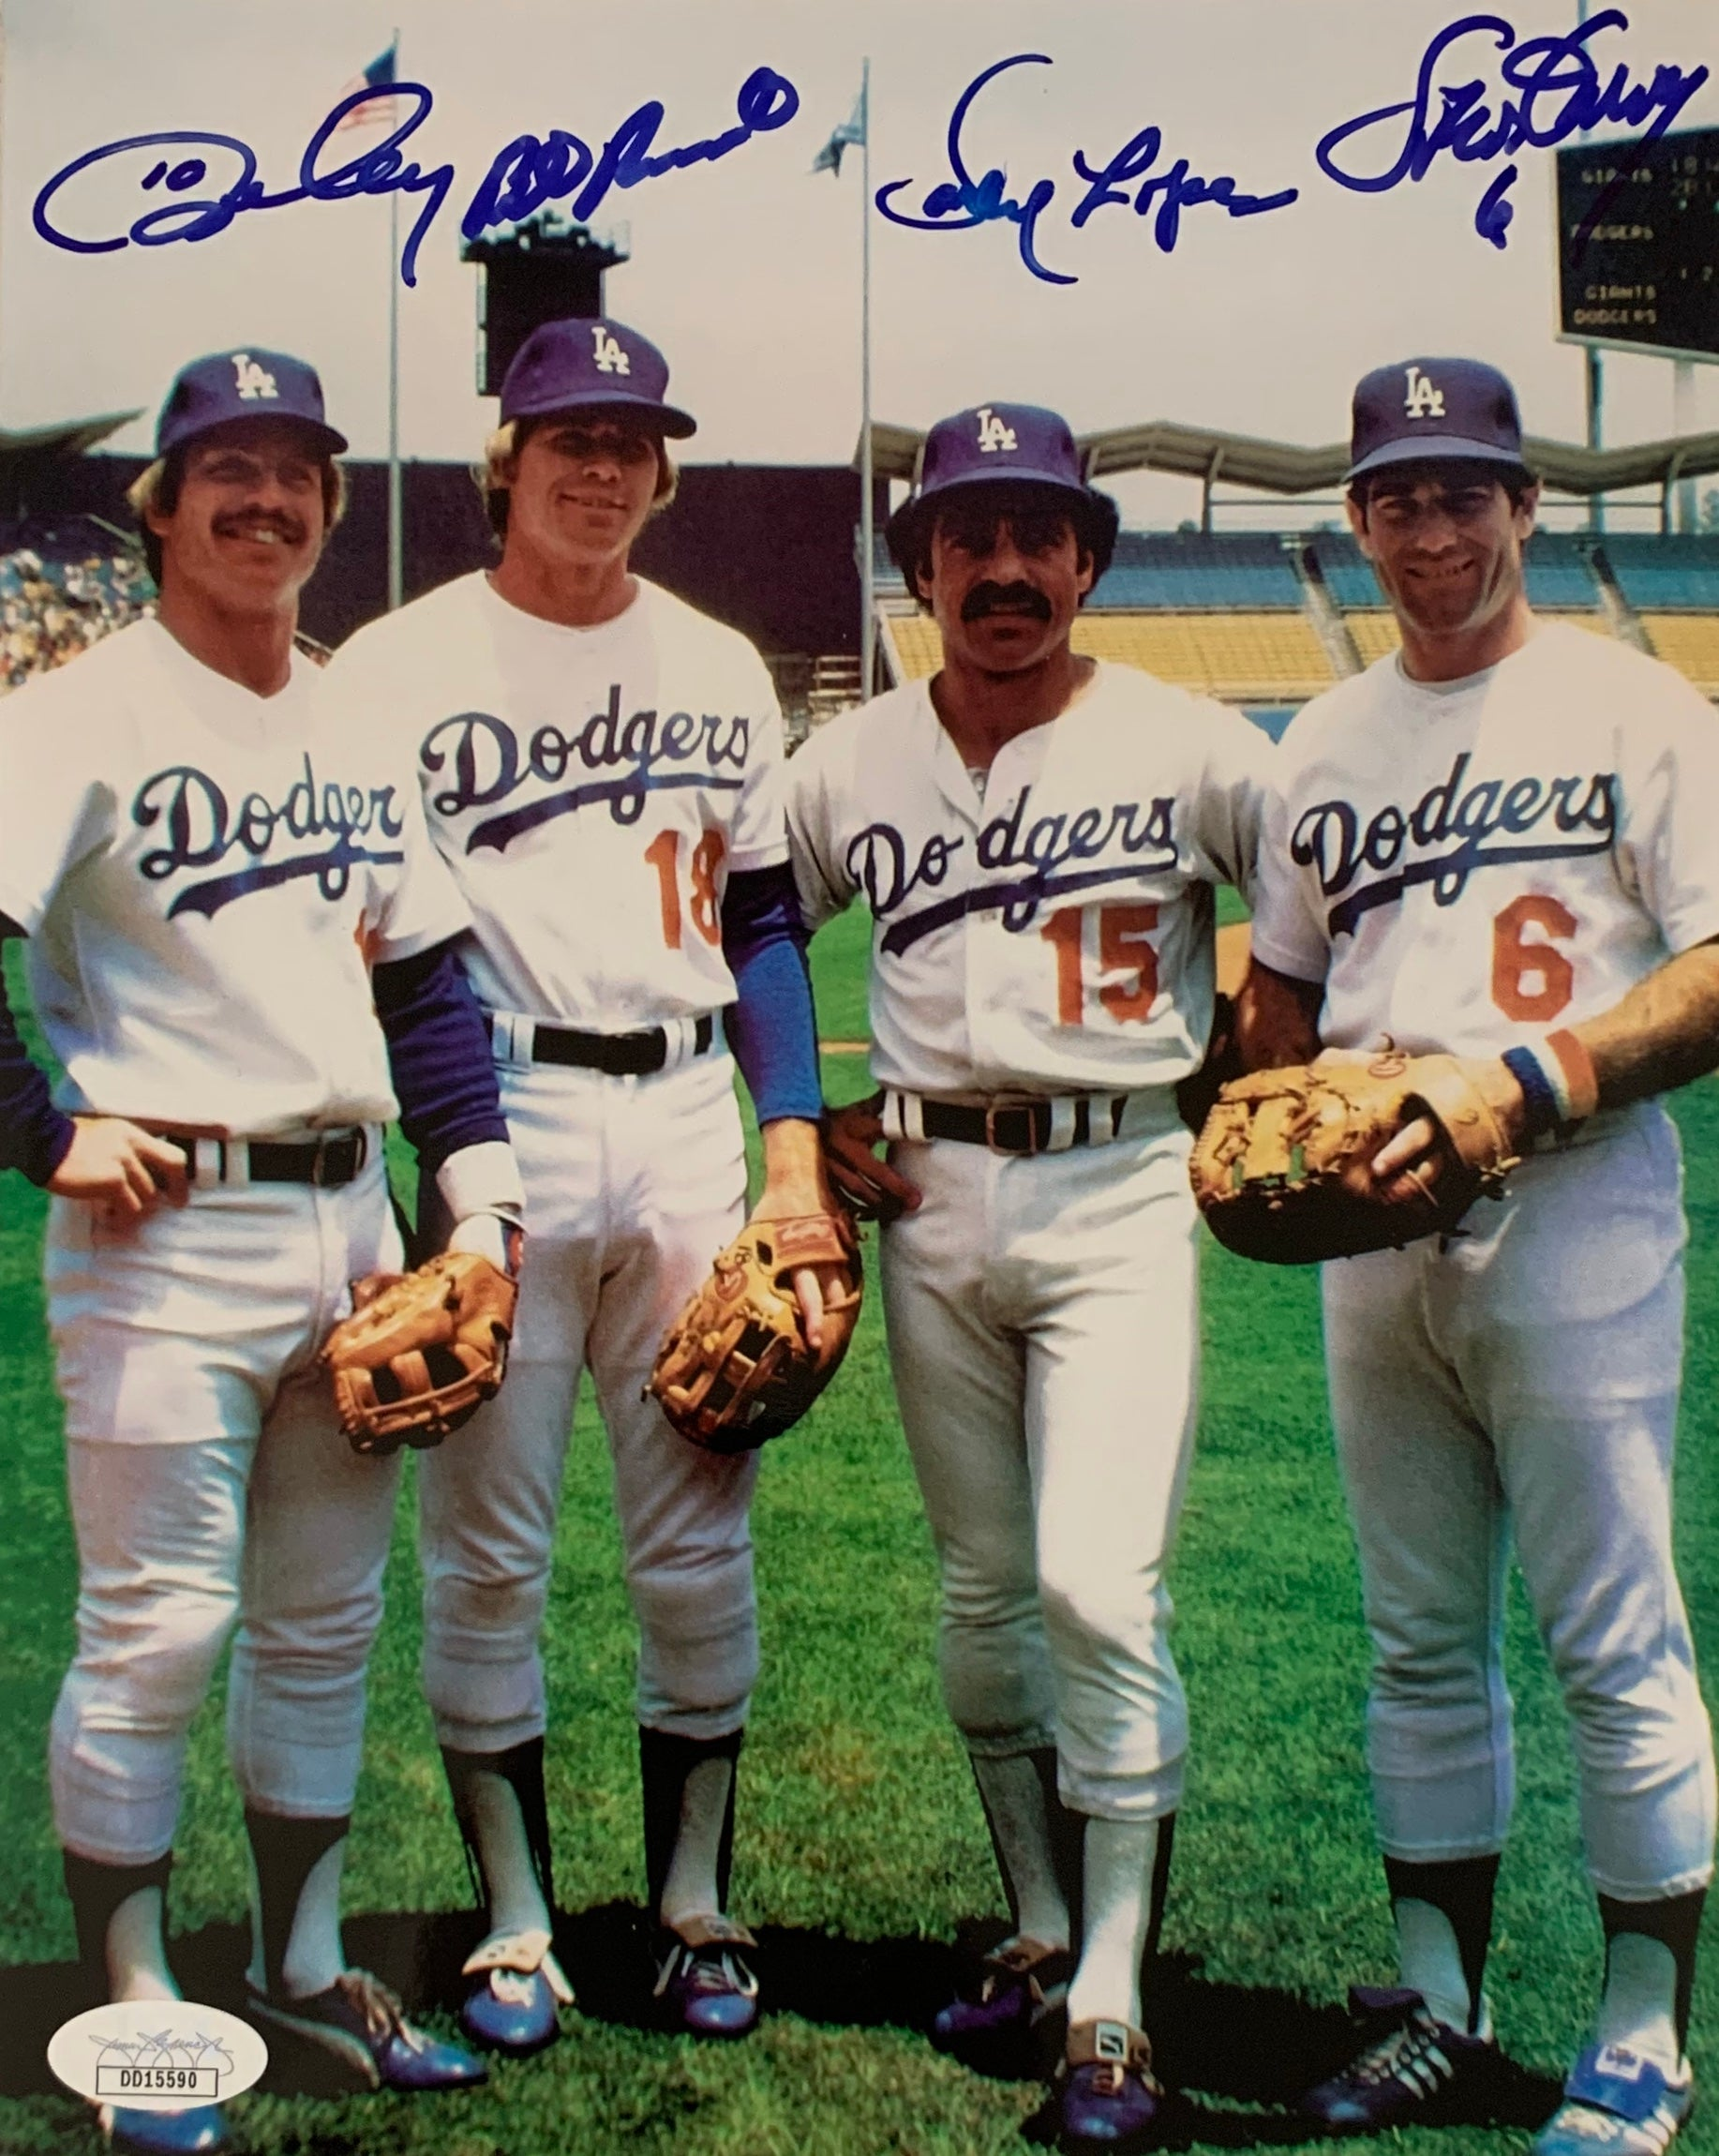 L.A. Dodgers Infield Signed By Ron Cey, Bill Russell, Steve Garvey, Davey Lopes 8x10 - Latitude Sports Marketing